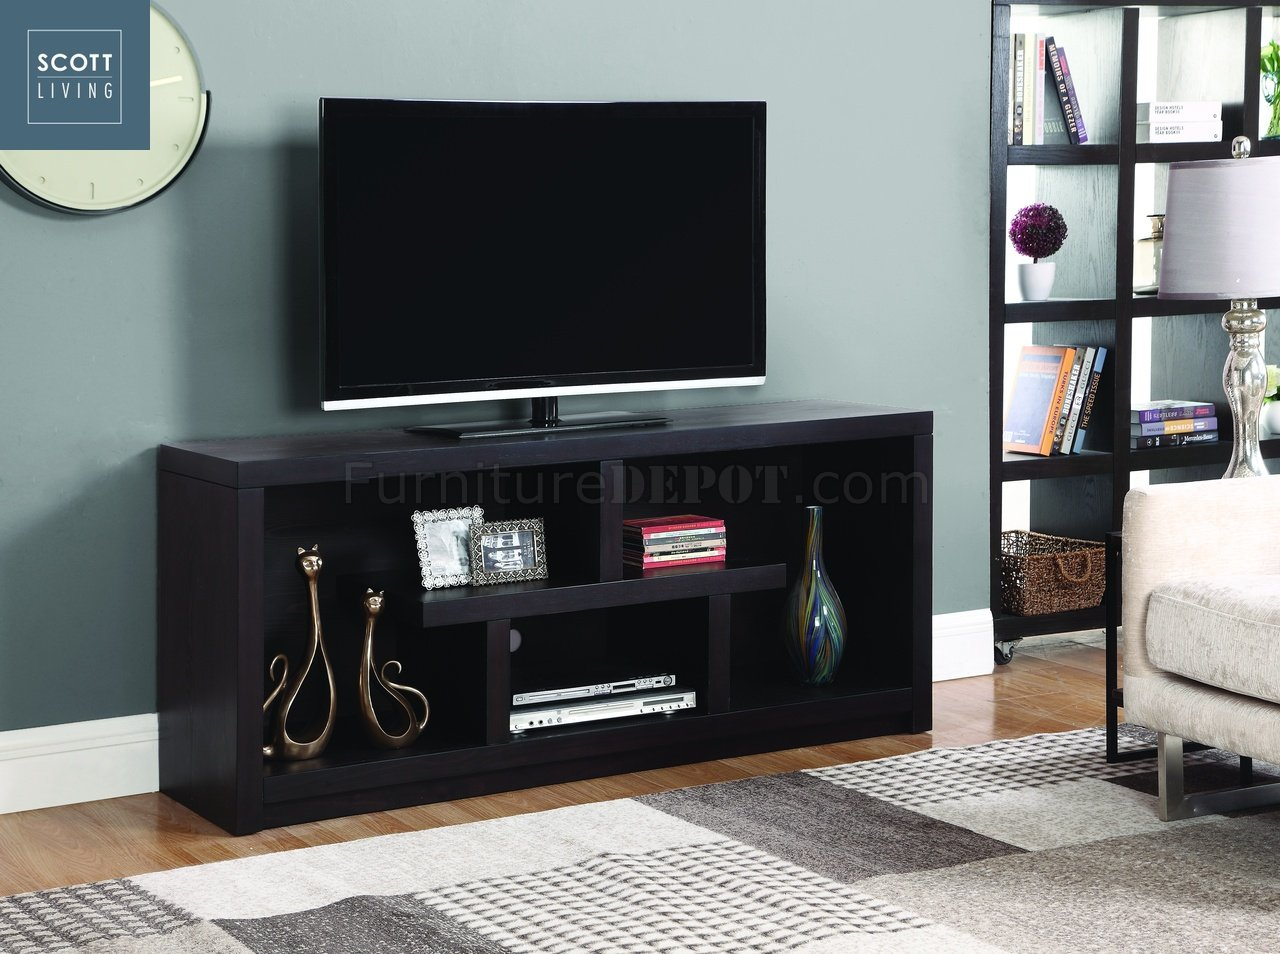 Macy 701039 Scott Living Coaster Walnut Tv Stand